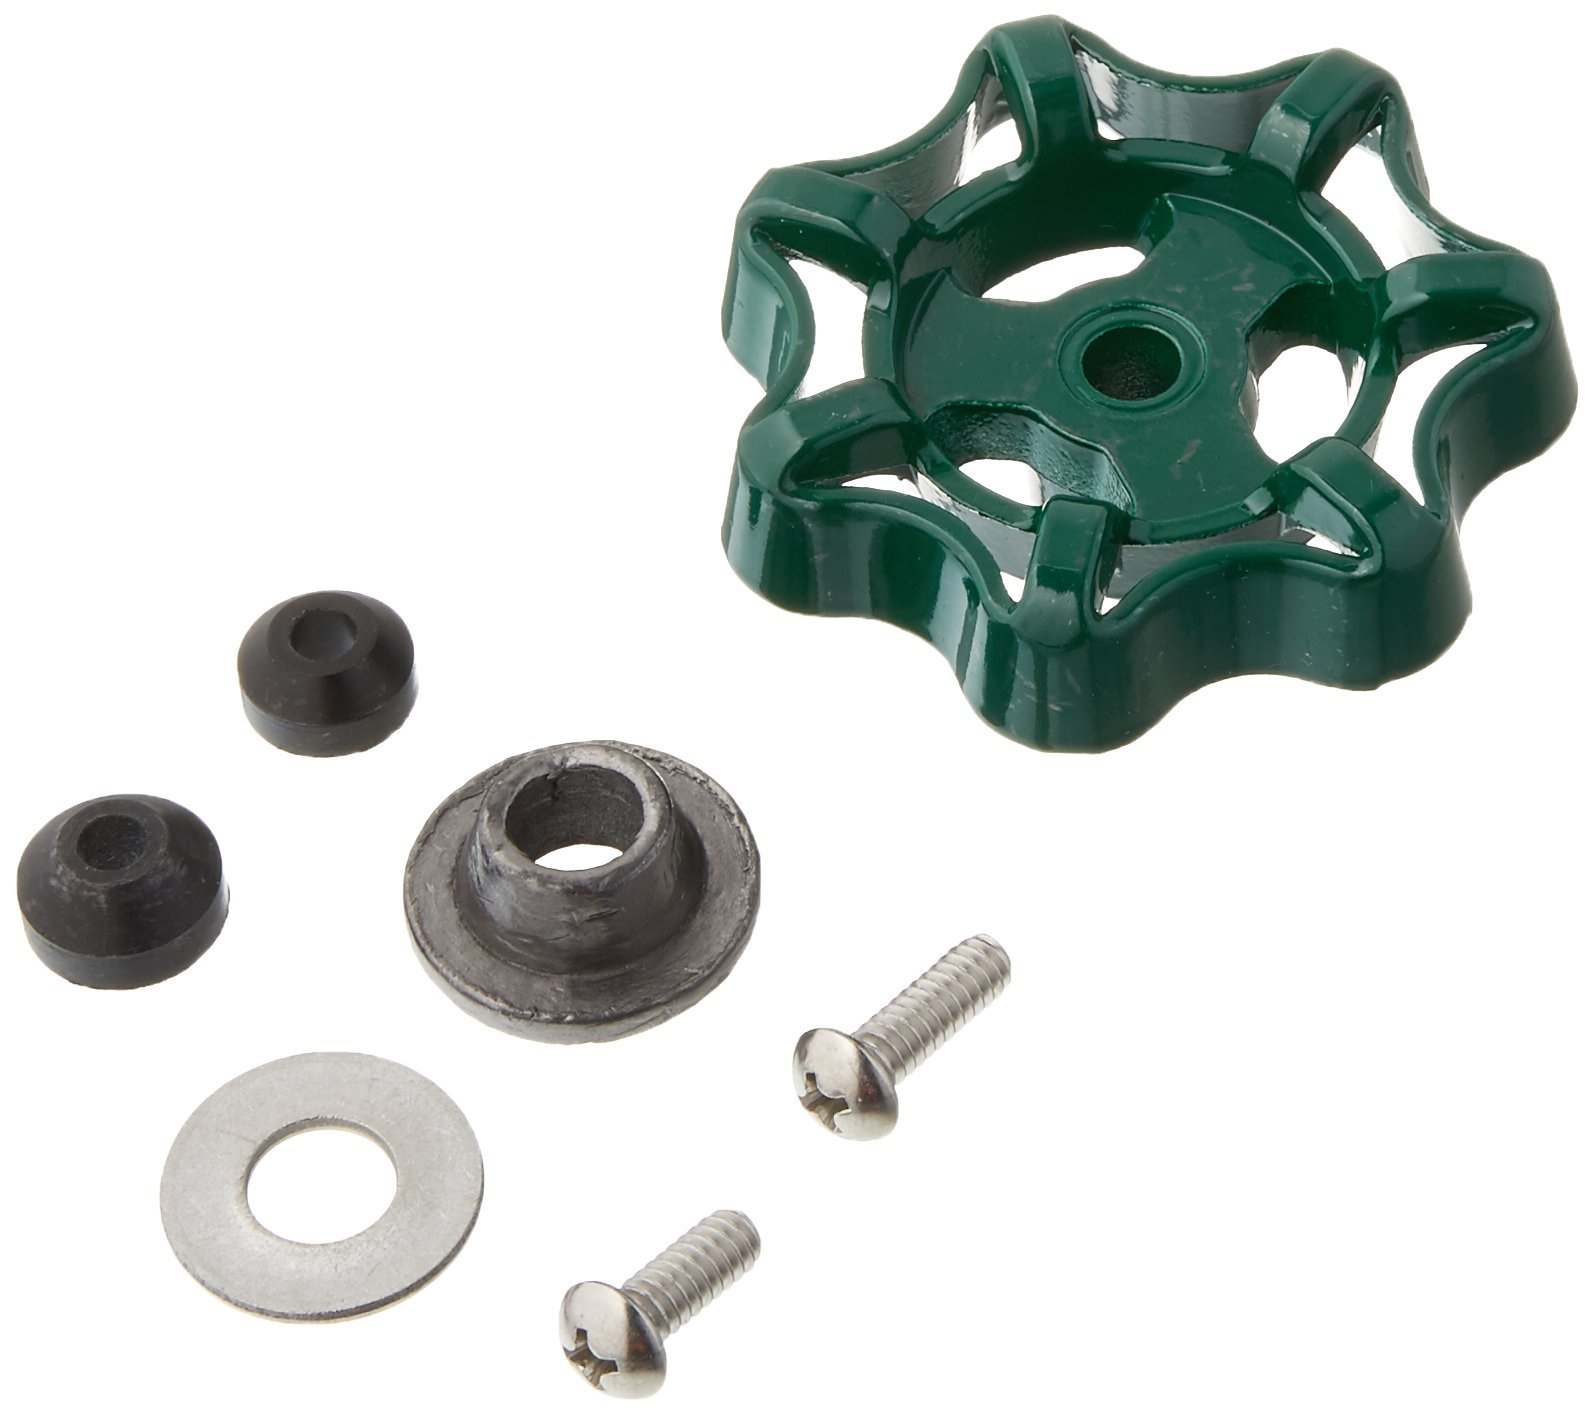 PRIER PRODUCTS C-134KT-807 C-134 Complete Wall Hydrant Service Repair Parts Kit for New Style